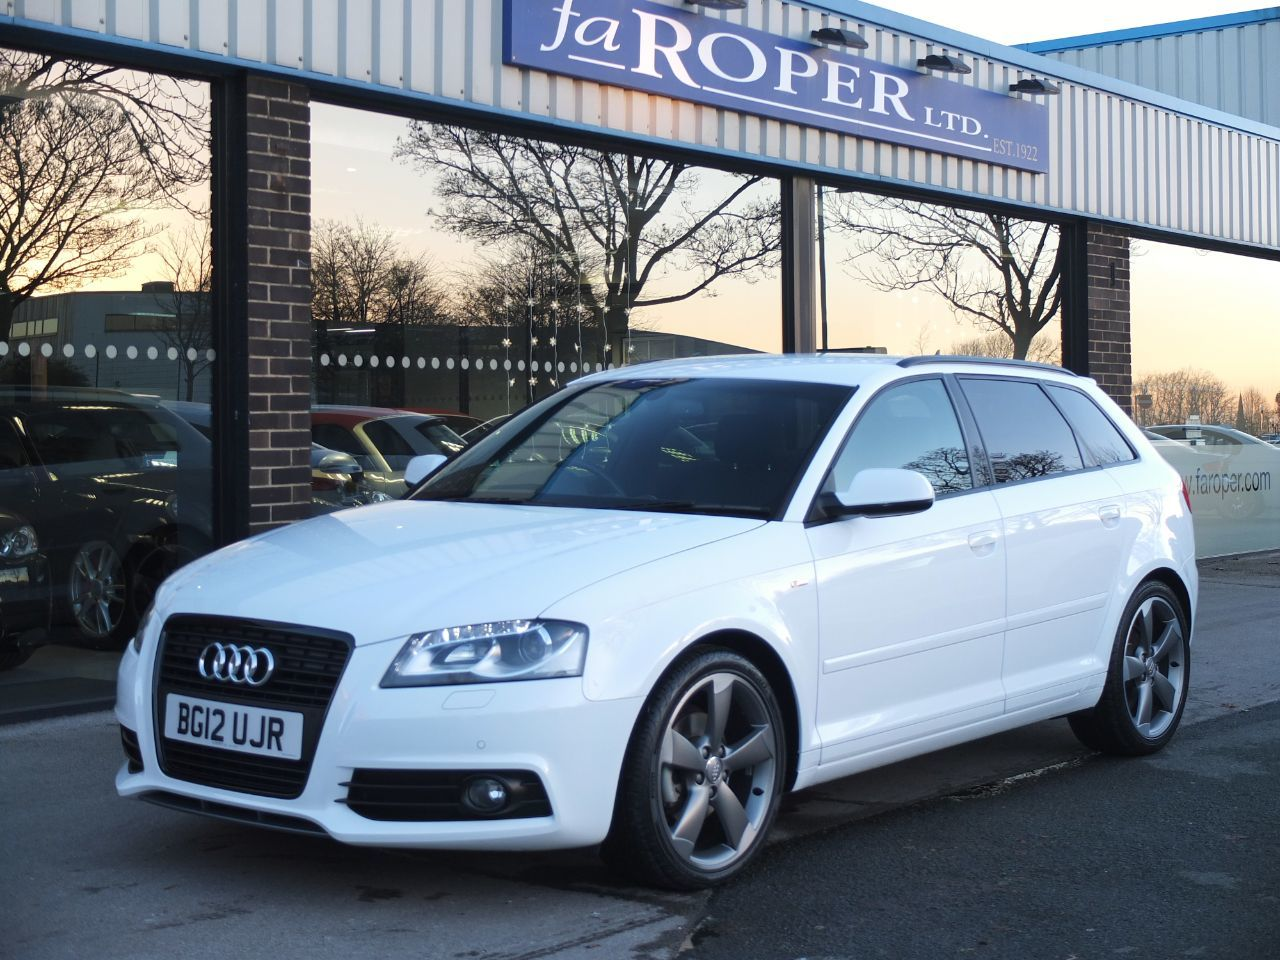 Audi A3 Sportback 2.0 TDI Black Edition S Tronic [Start Stop] Tech Pack +++ Spec 5 door Hatchback Diesel Ibis WhiteAudi A3 Sportback 2.0 TDI Black Edition S Tronic [Start Stop] Tech Pack +++ Spec 5 door Hatchback Diesel Ibis White at fa Roper Ltd Bradford